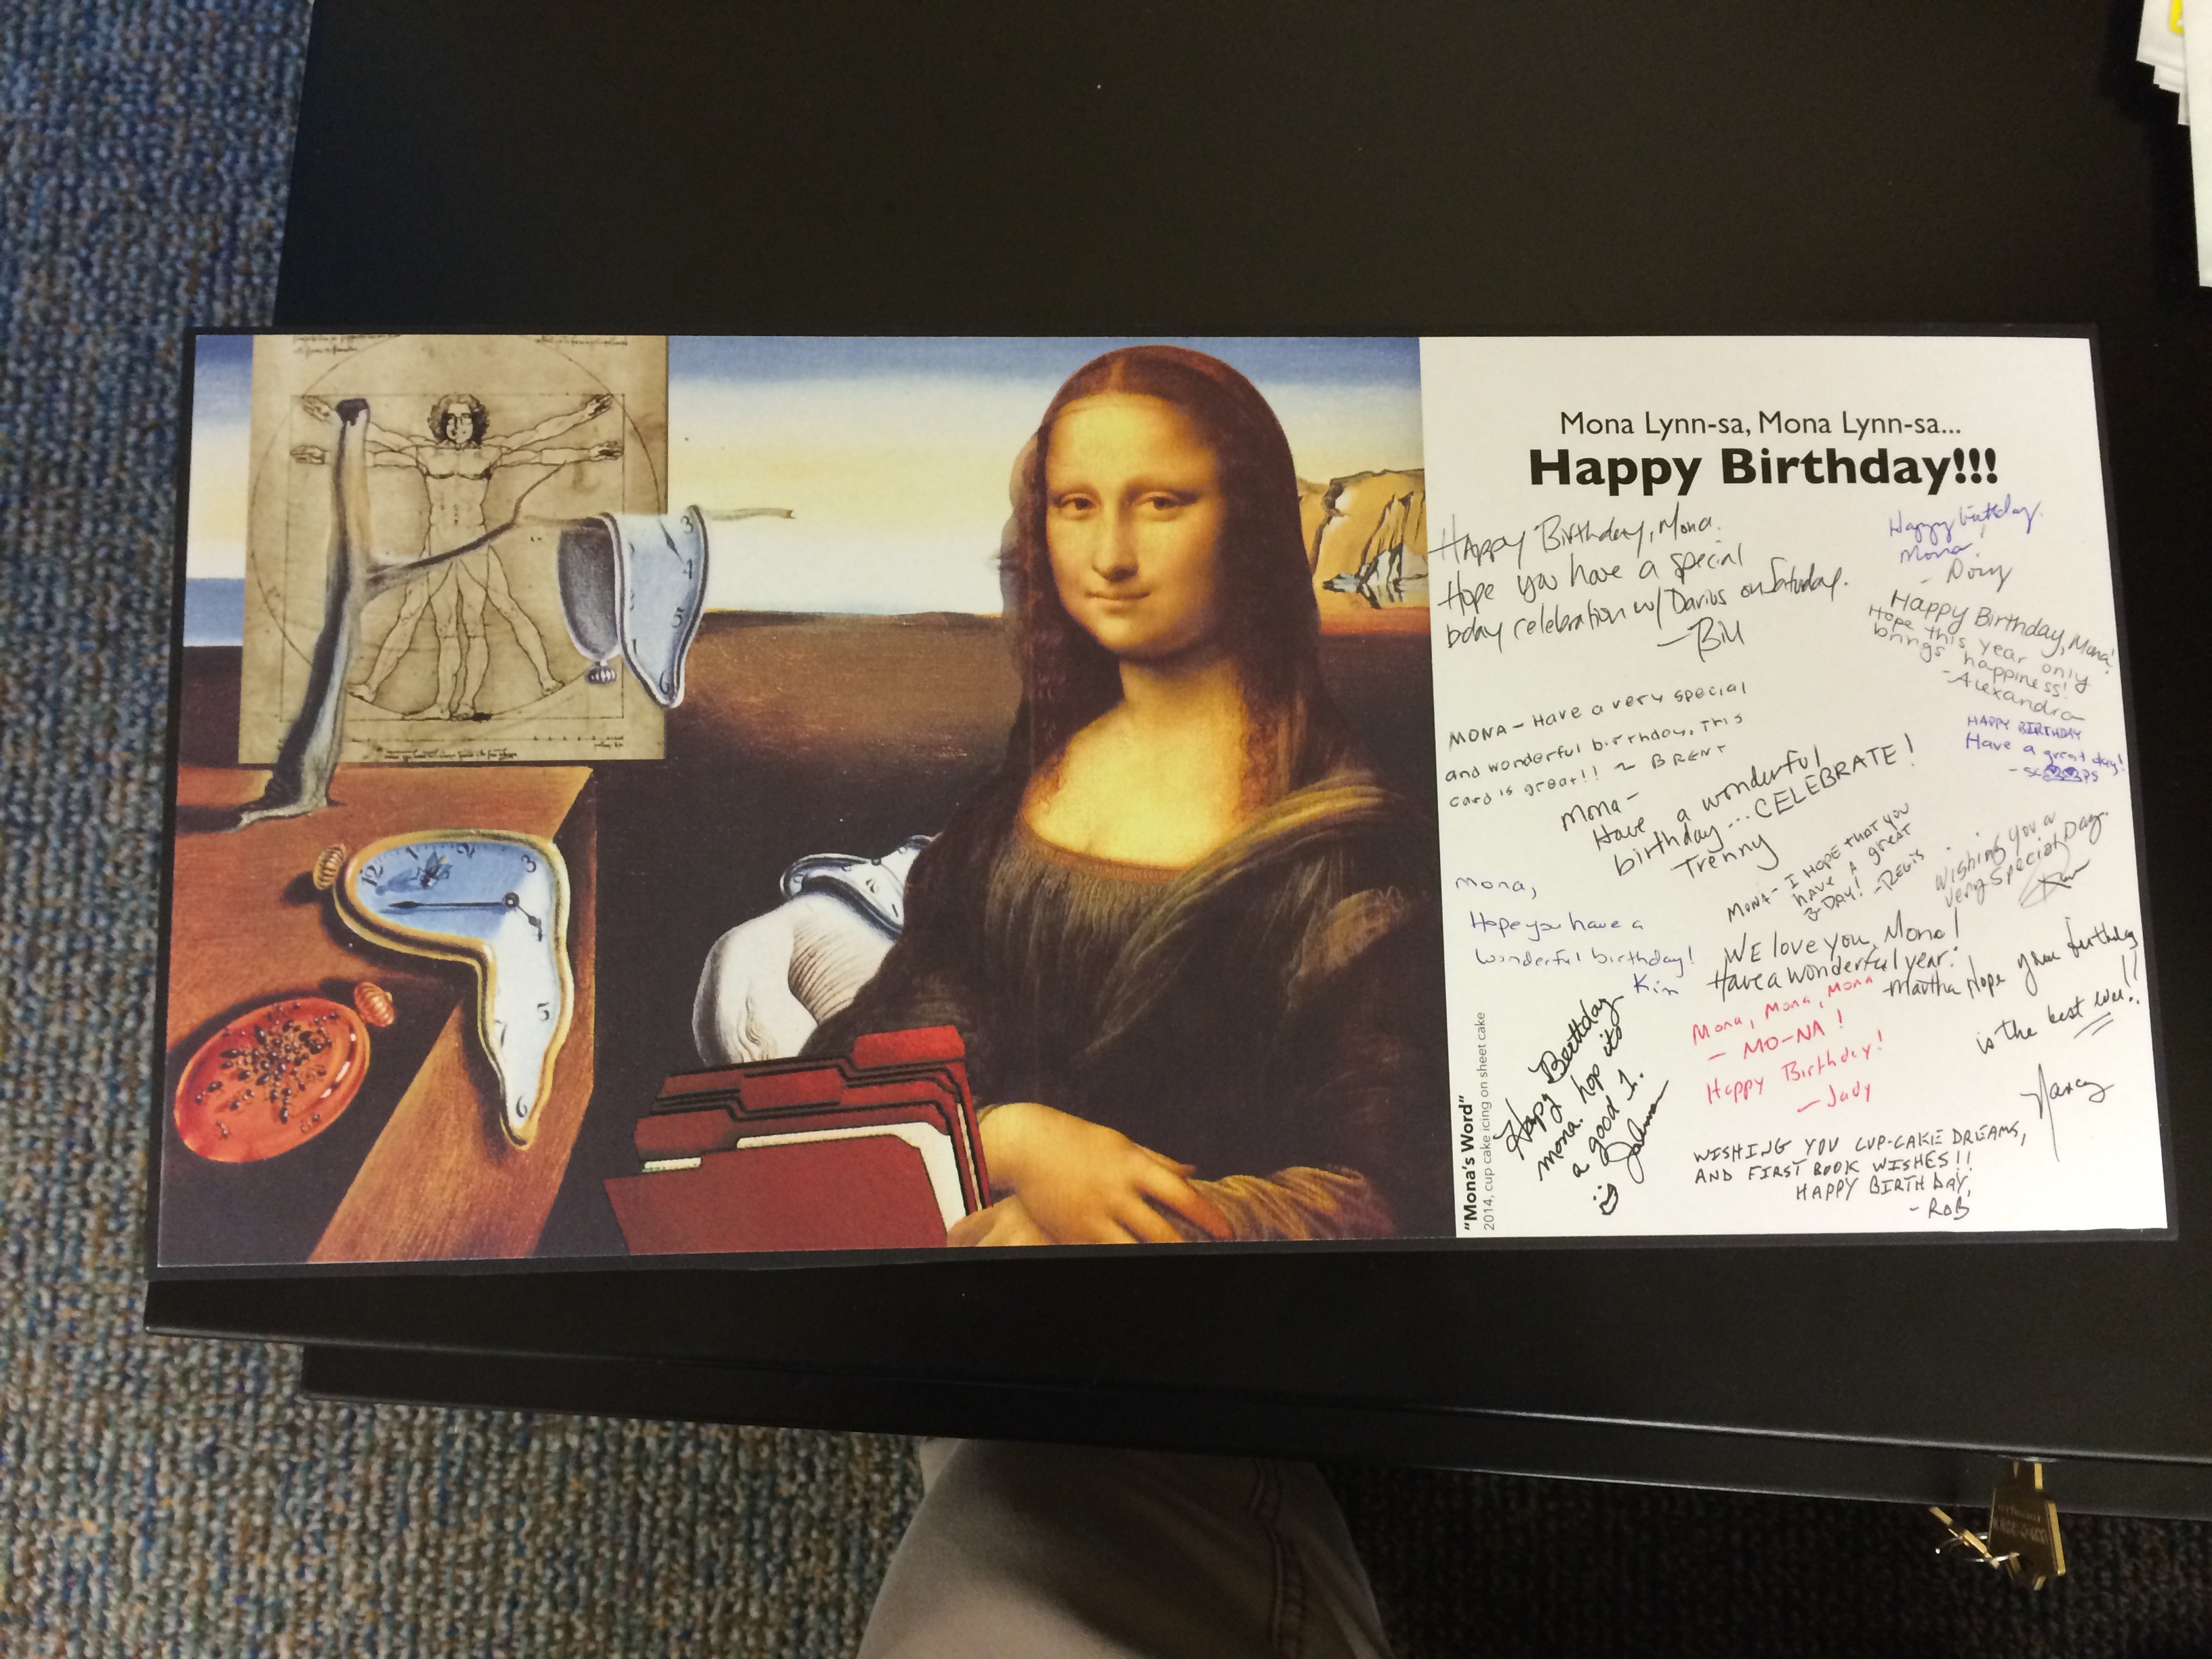 This was the card made for our Media Coordinator, Mona. As you can tell, it is a play on her name.